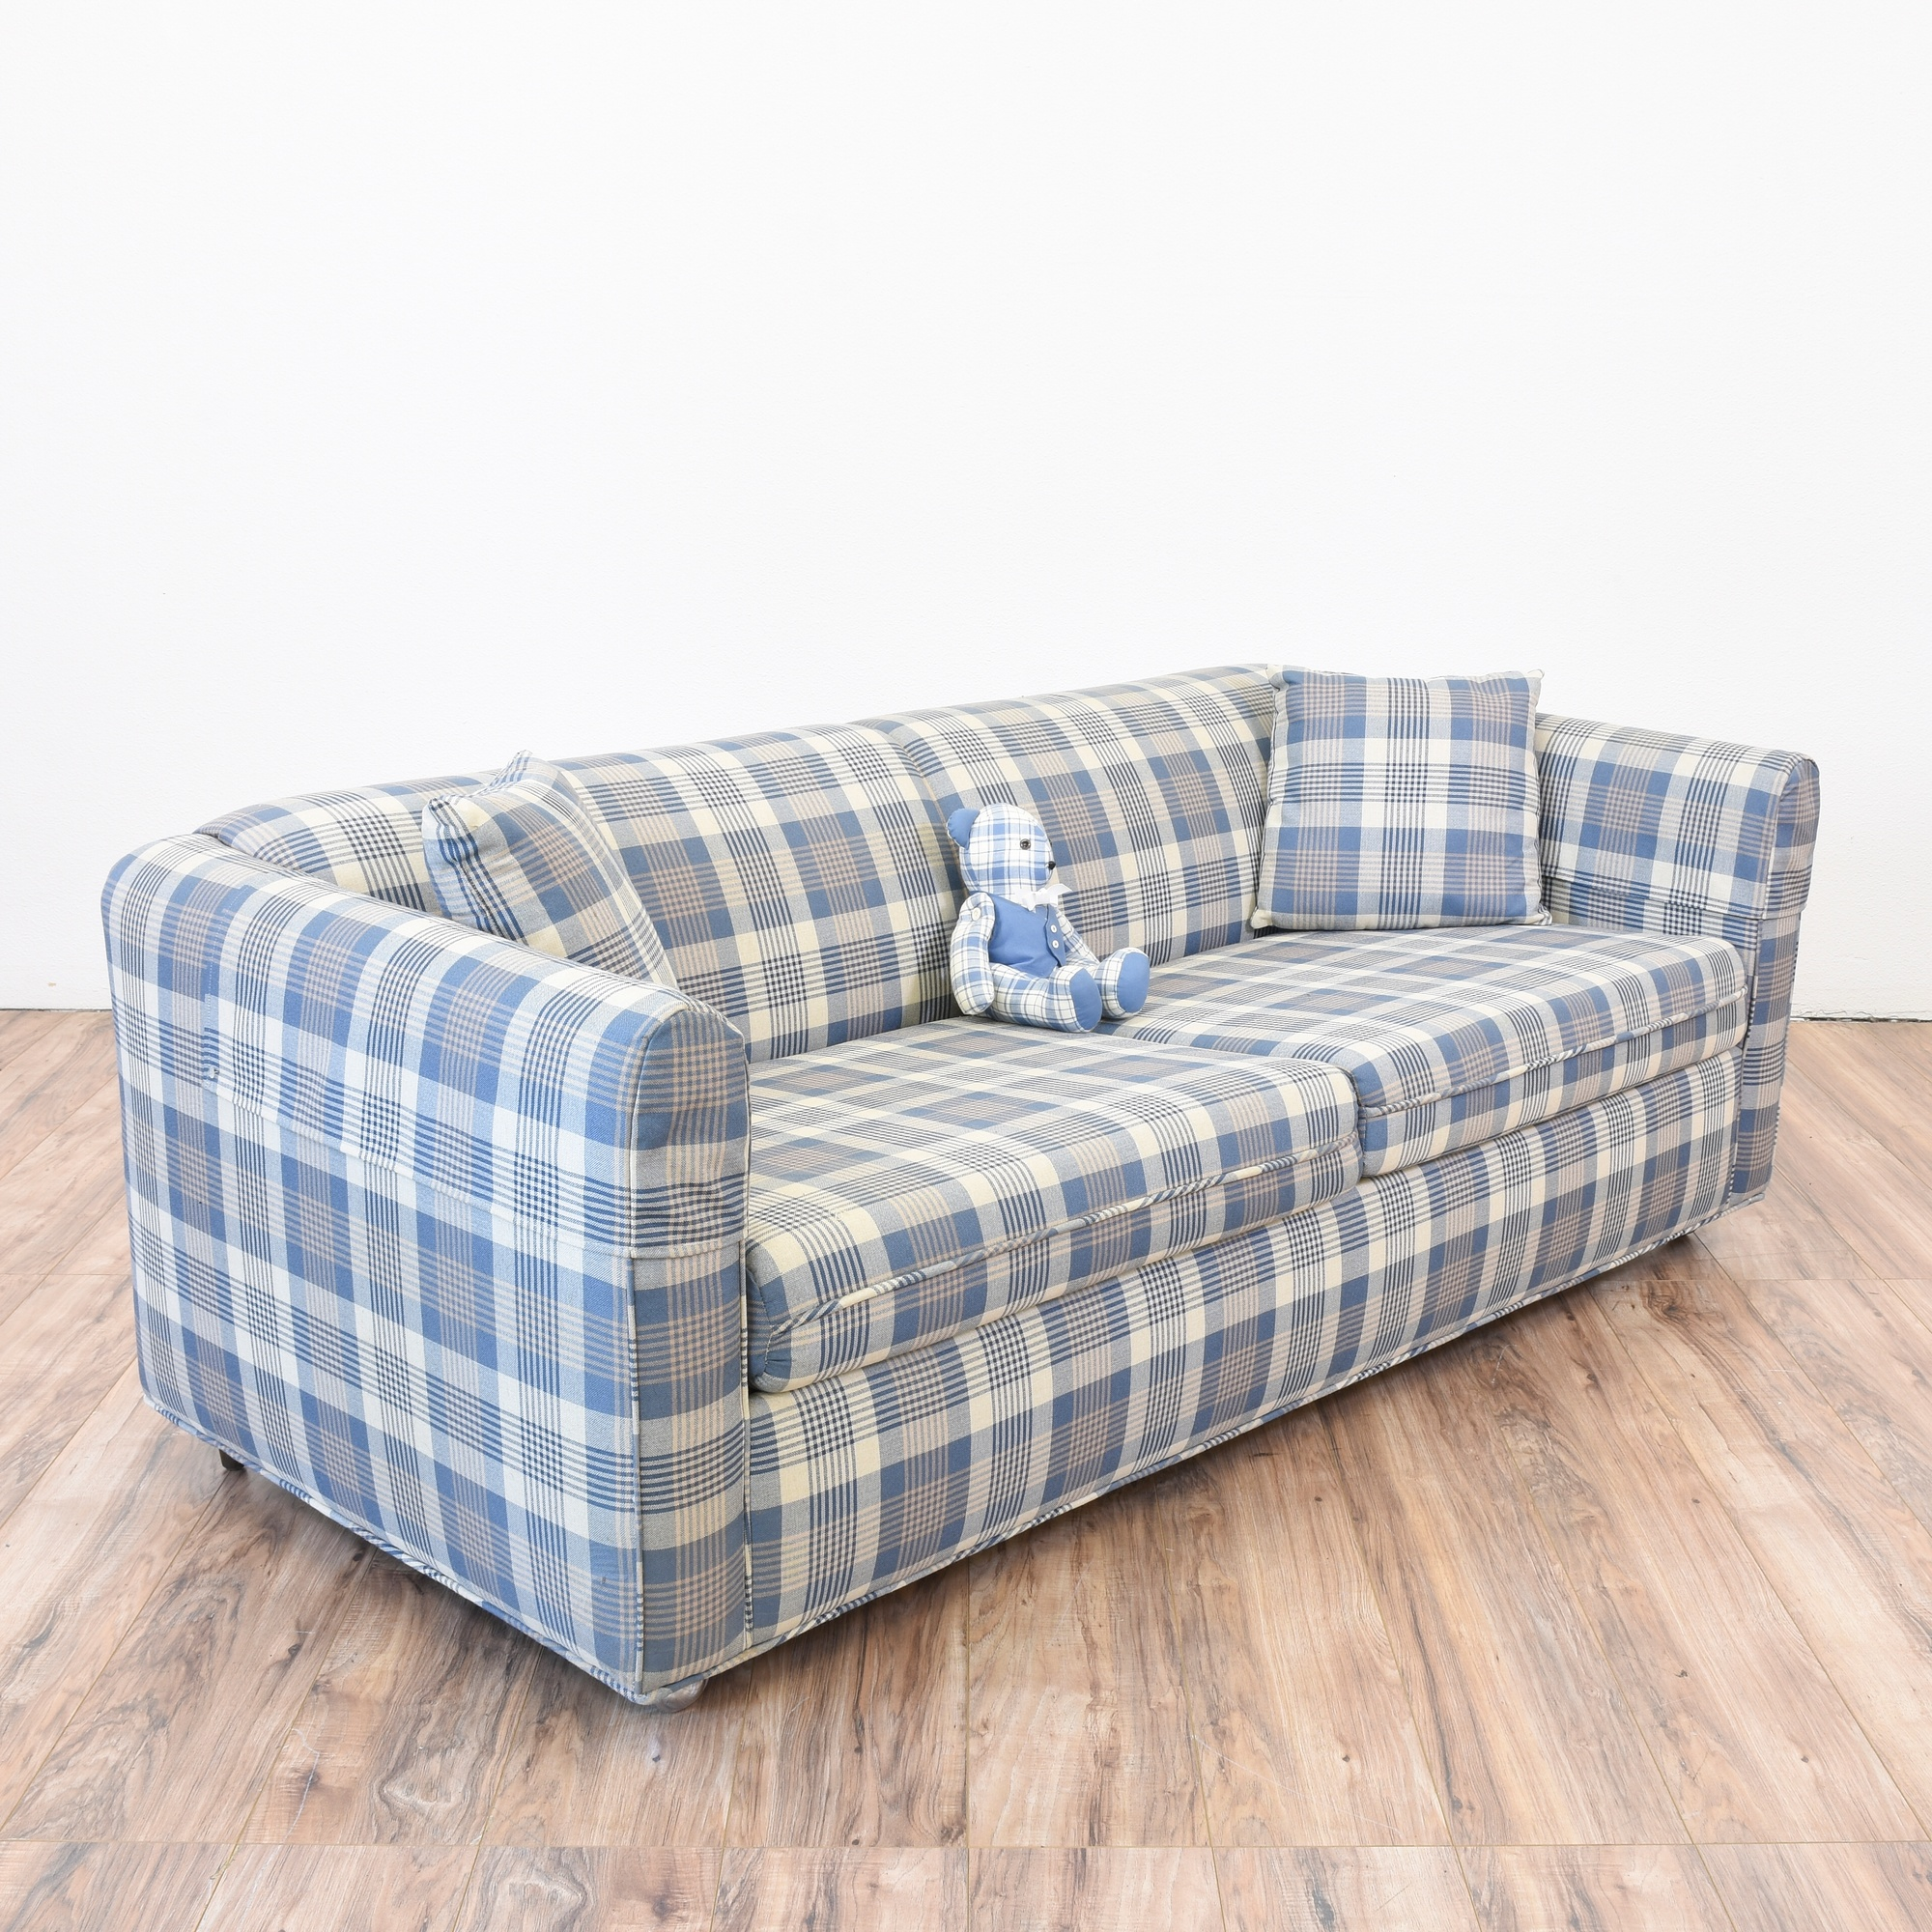 Plaid Teddy Bear Sleeper Sofa Loveseat Vintage Furniture San Diego Los Angeles